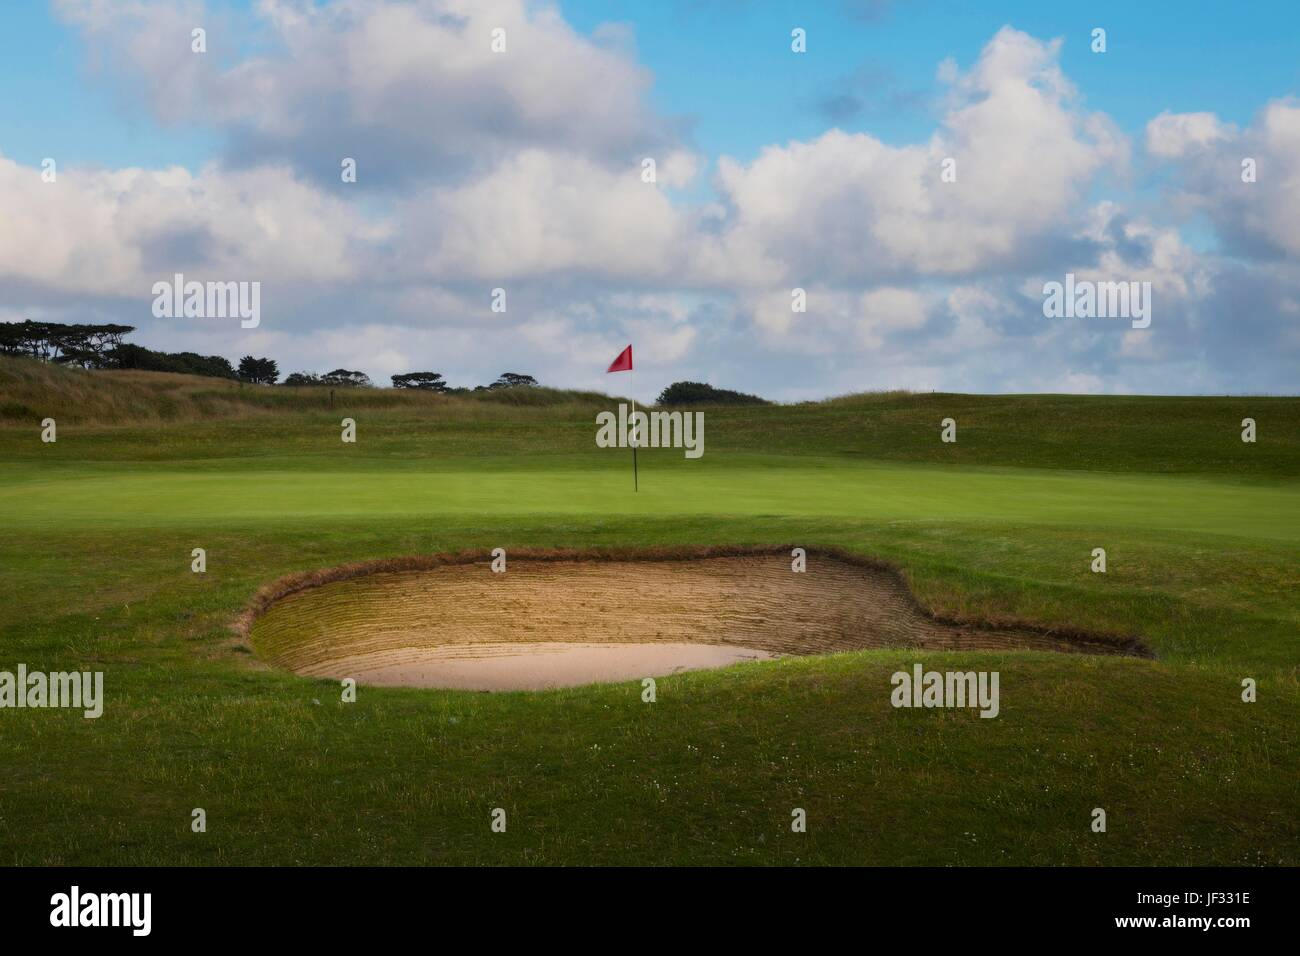 Golf bunker and green - Stock Image